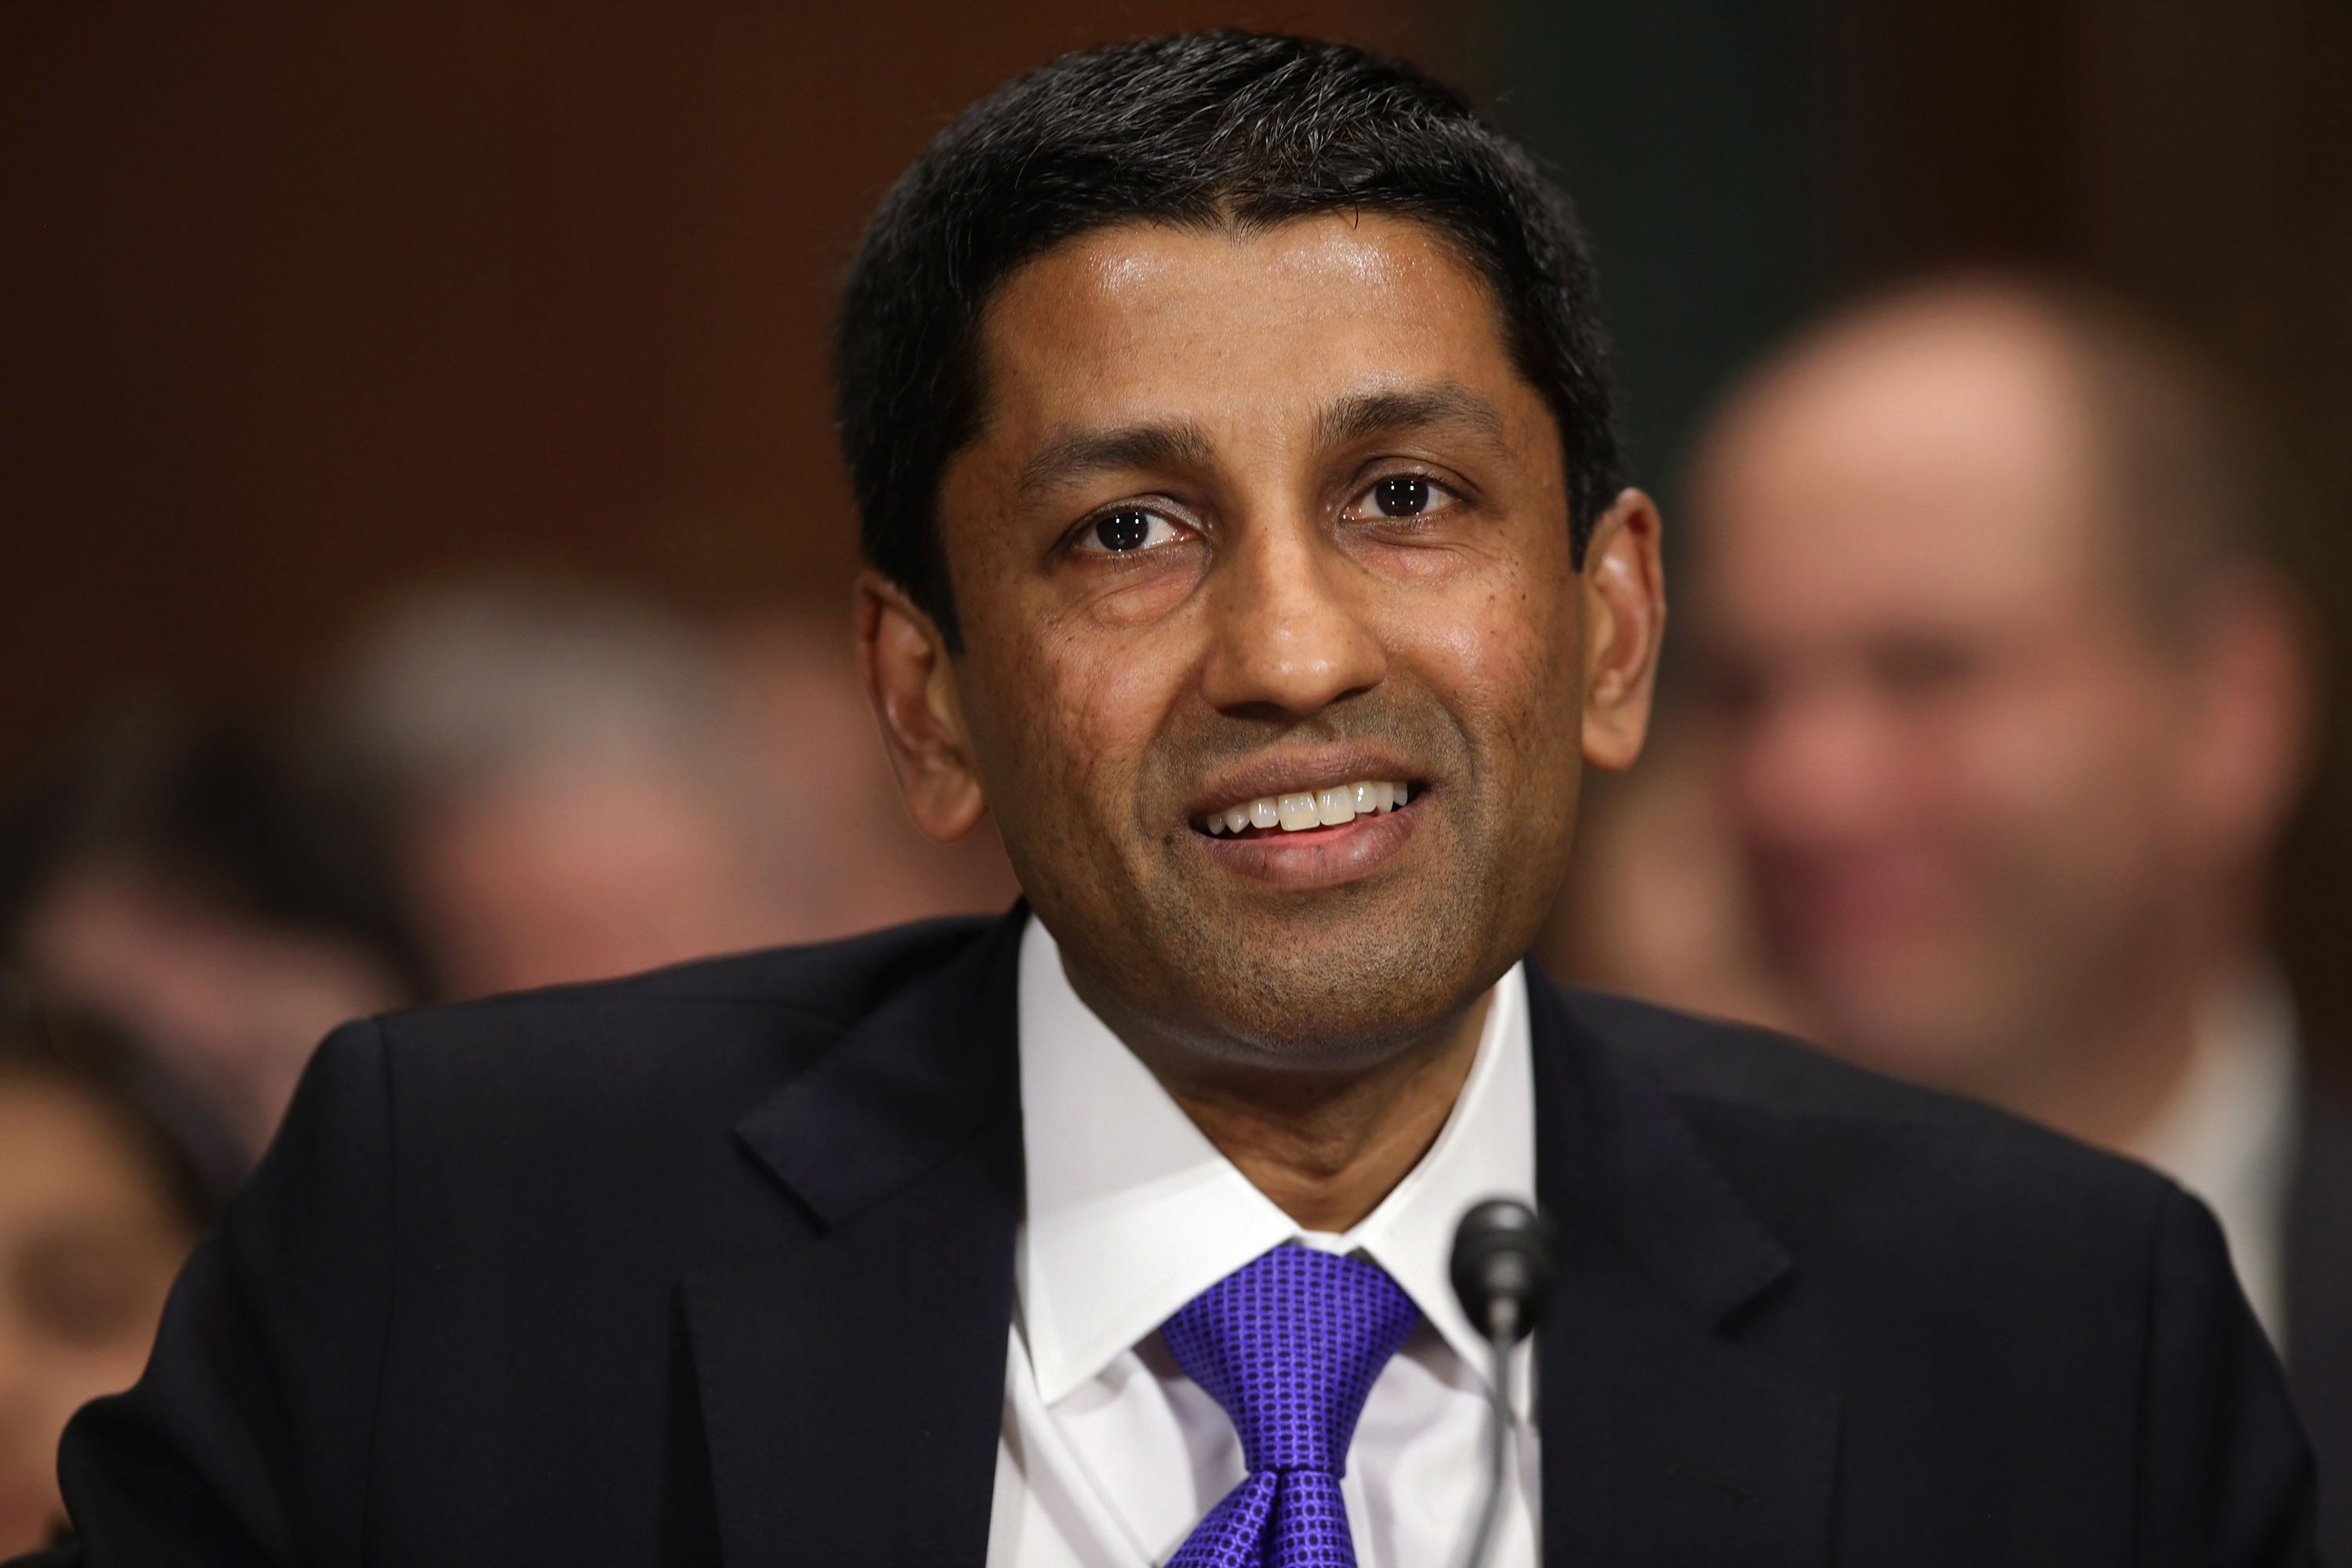 WASHINGTON, DC - APRIL 10:  Principal Deputy Solicitor General of the United States Srikanth Srinivasan testifies before the Senate Judiciary Committee on Capitol Hill April 10, 2013 in Washington, DC. U.S. President Barack Obama has nominated Sirnivasan to be circuit judge for the United States Court of Appeals for the District of Columbia Circuit. A significant number of Supreme Court appointees were previously D.C. Circuit Court judges.  (Photo by Chip Somodevilla/Getty Images)